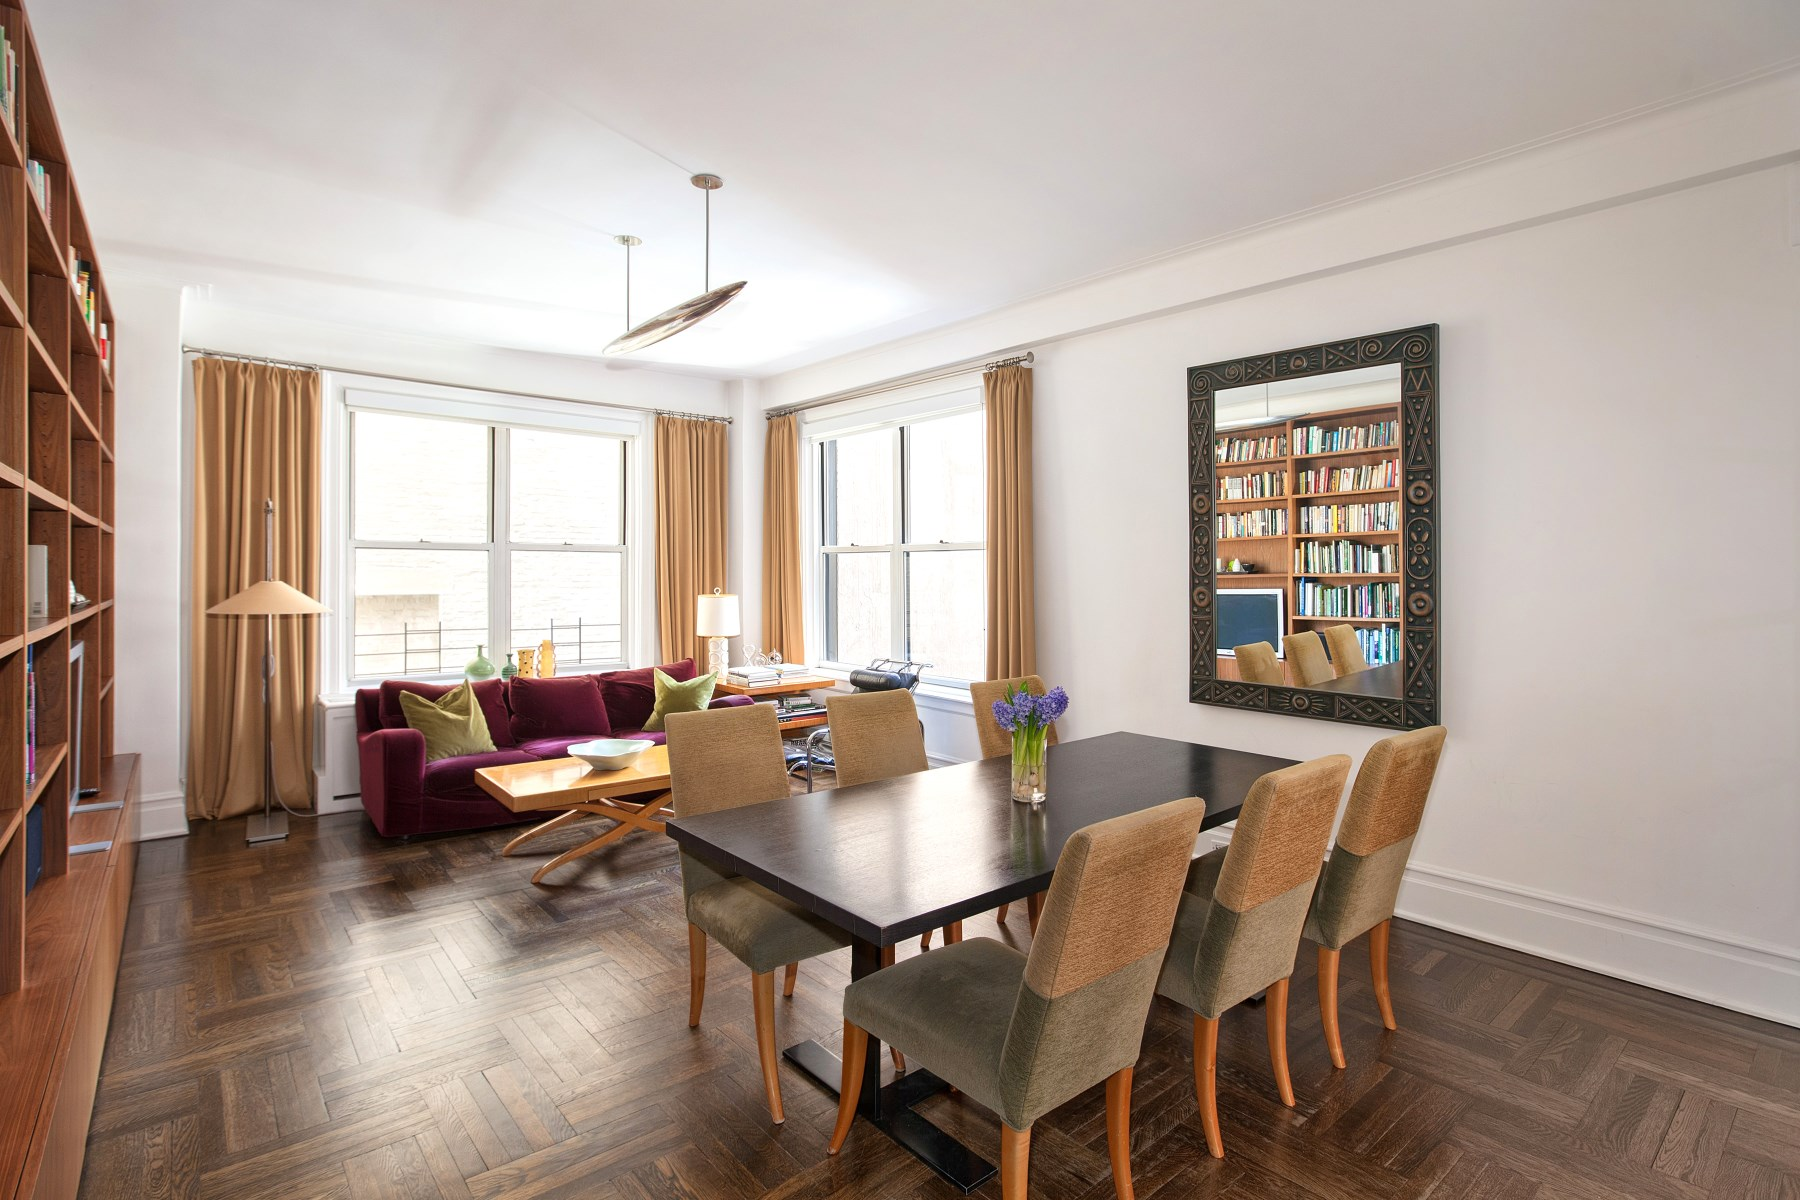 Property Of 320 West End Avenue, Apt. 4A